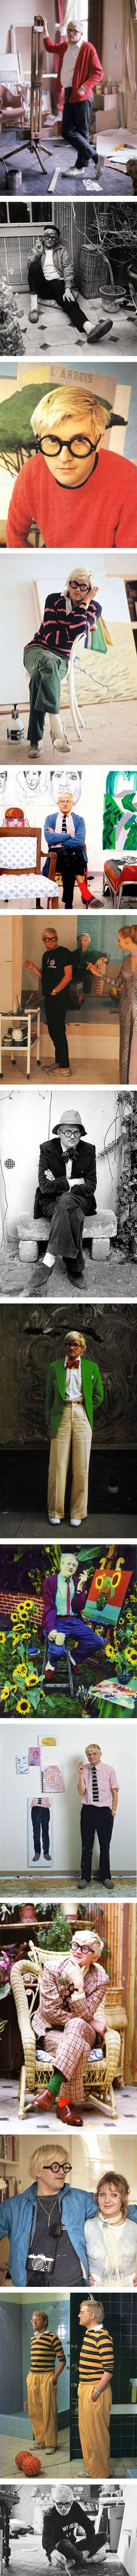 14 cool photos of David Hockney's best style moments